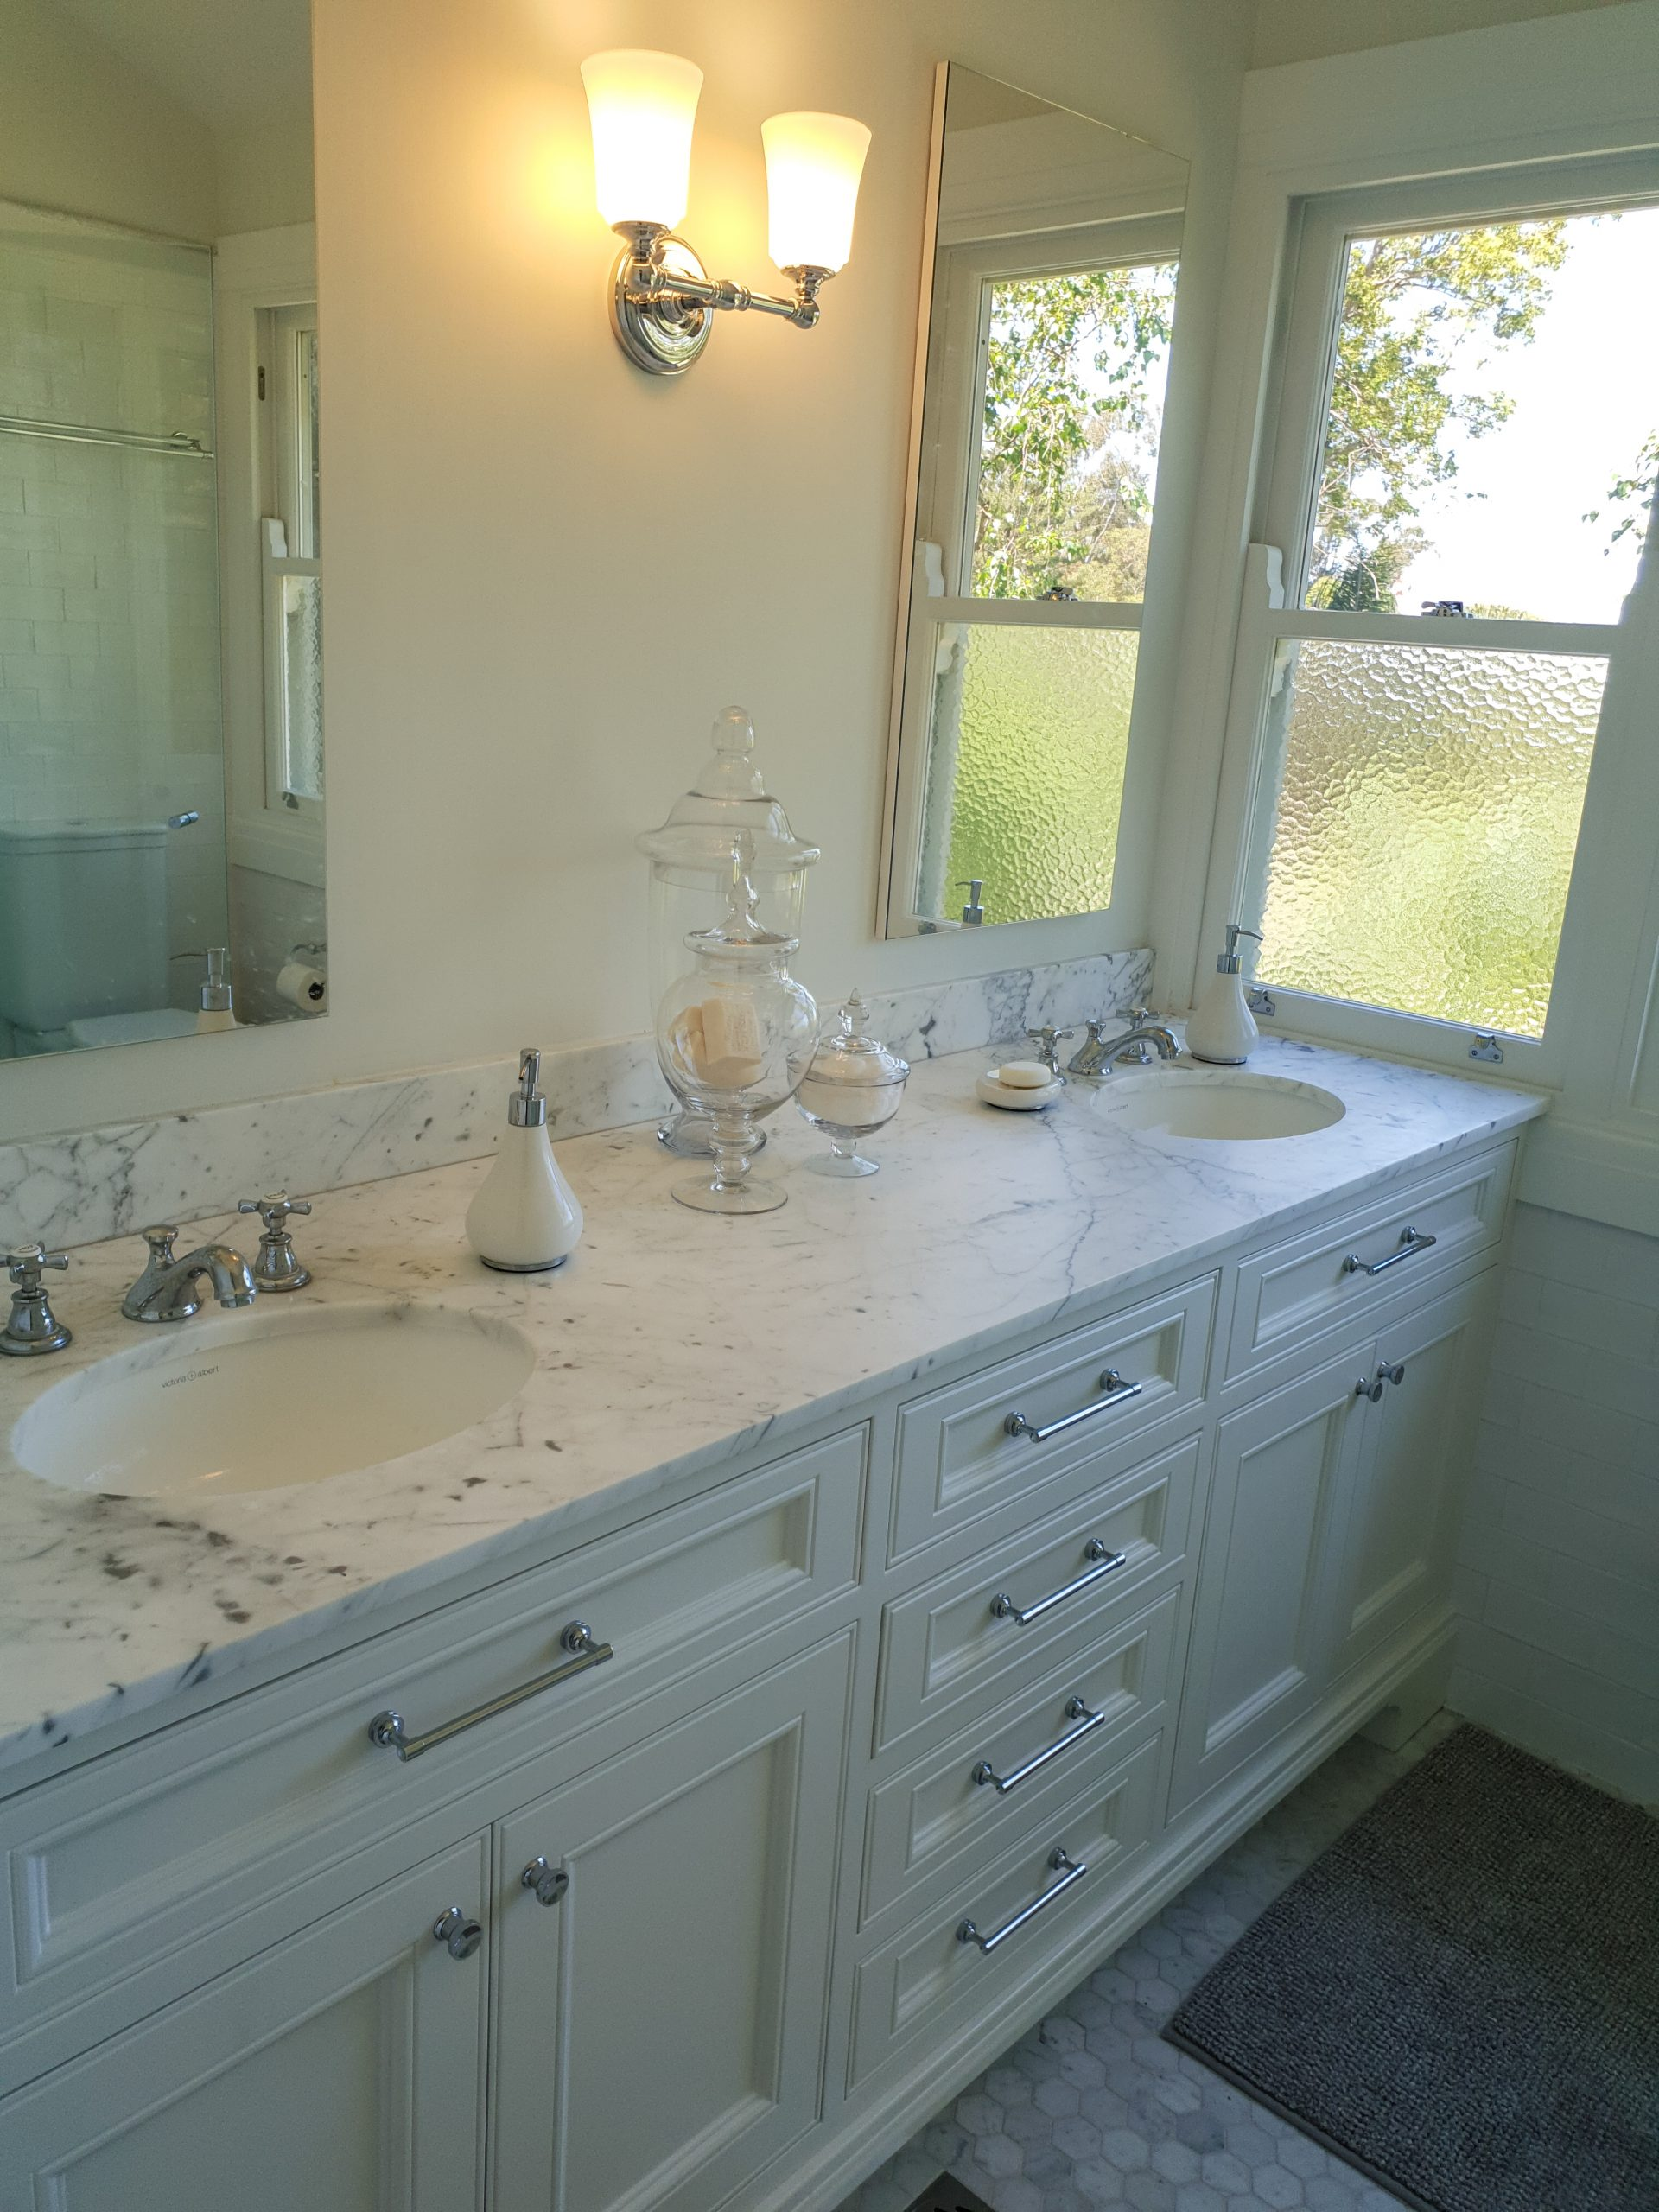 Bathrooms and Kitchens